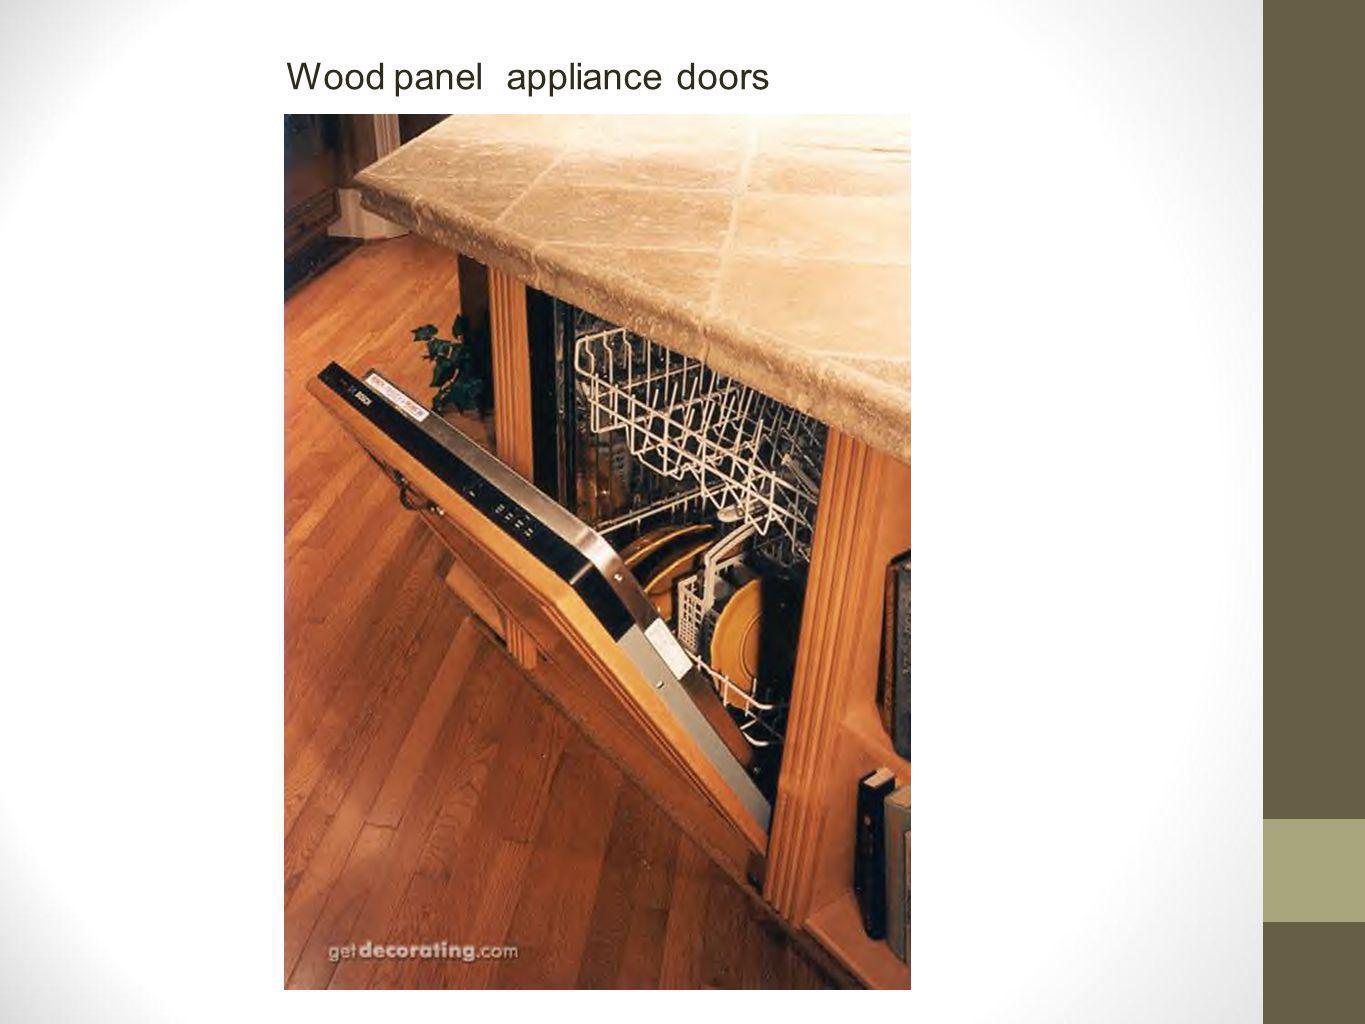 Wood panel appliance doors